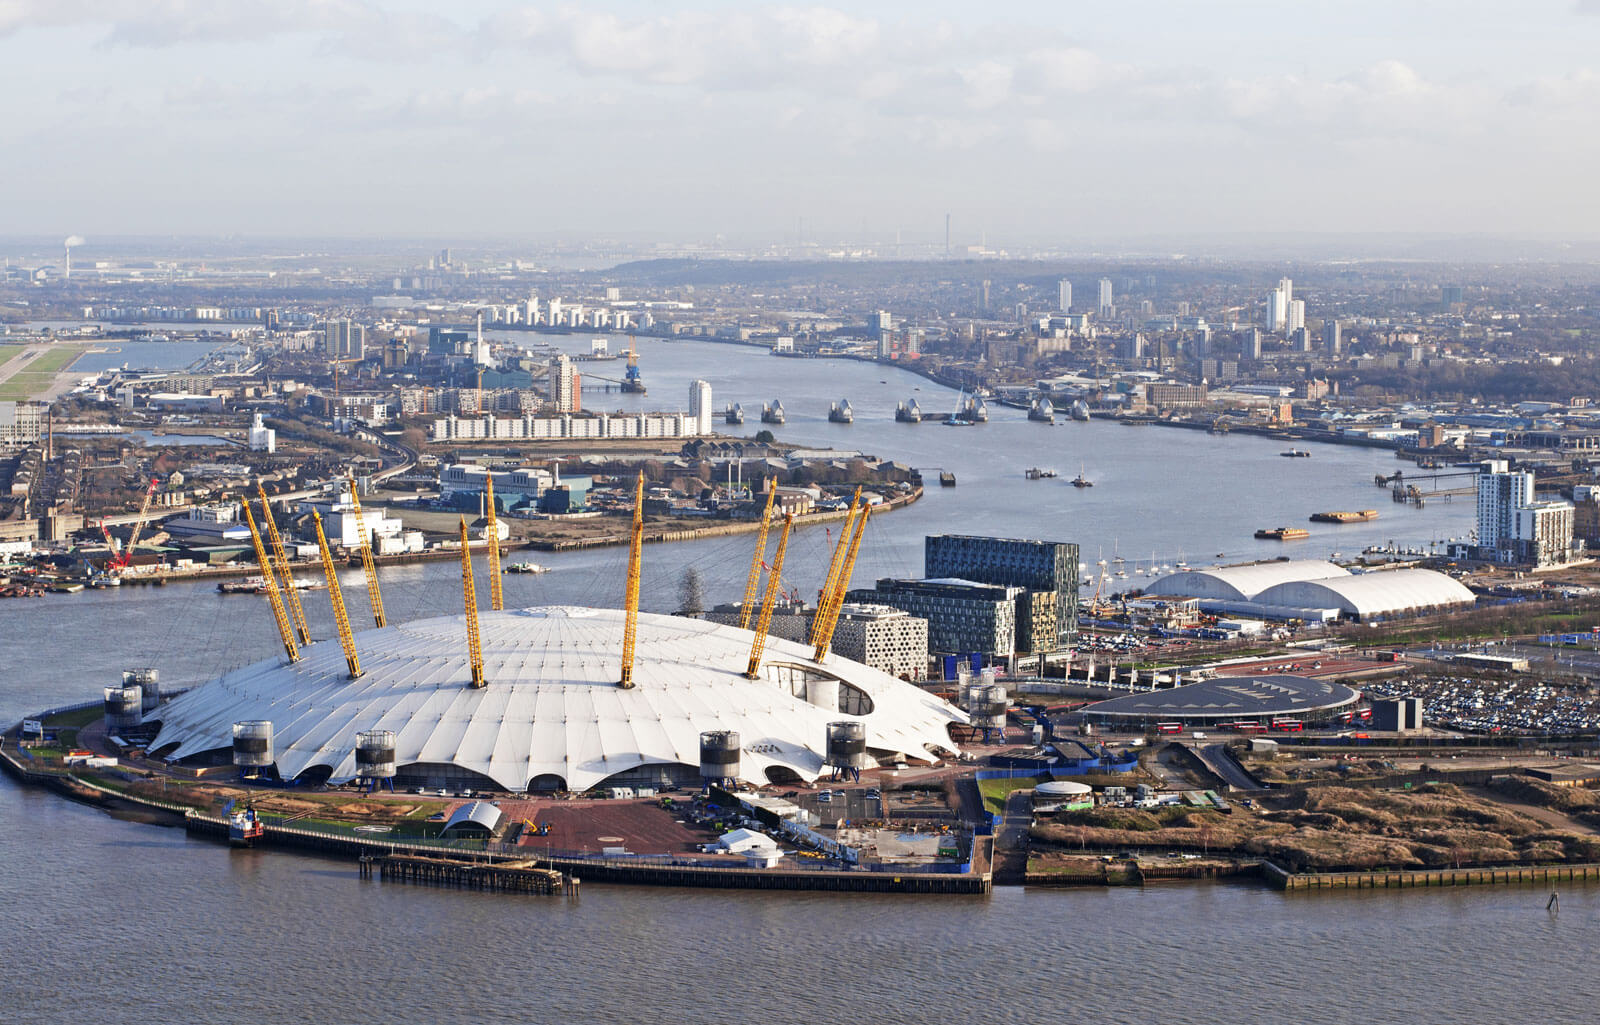 A view of the Millennium Dome, or O2, and the city of London from Emirates Air Line.